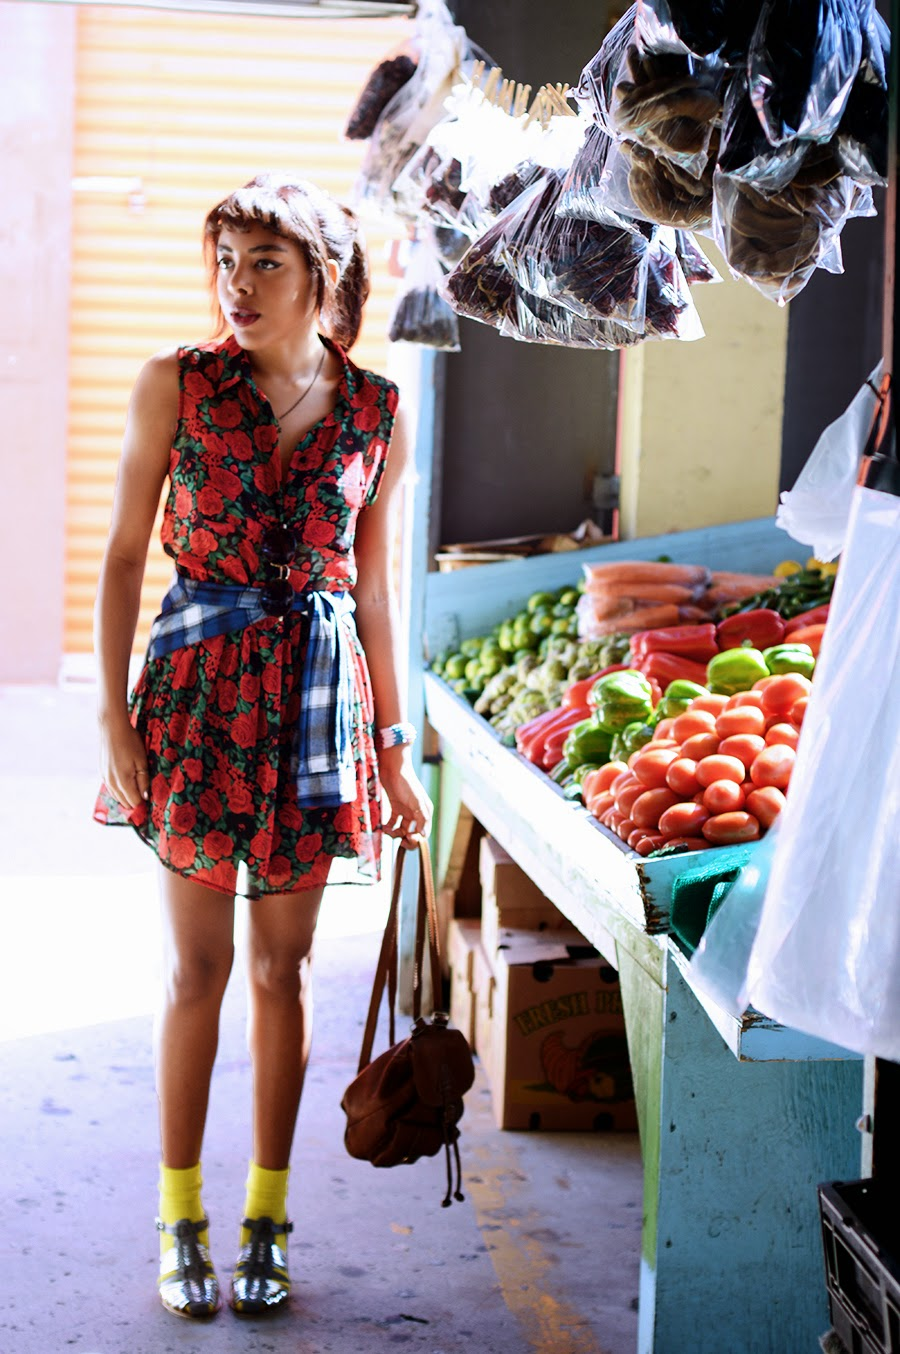 Indie Fashion Blogger Anais Alexandre of Down to Stars in a Mink Pink dress with Urban Outfitters sandals at a local fruteria